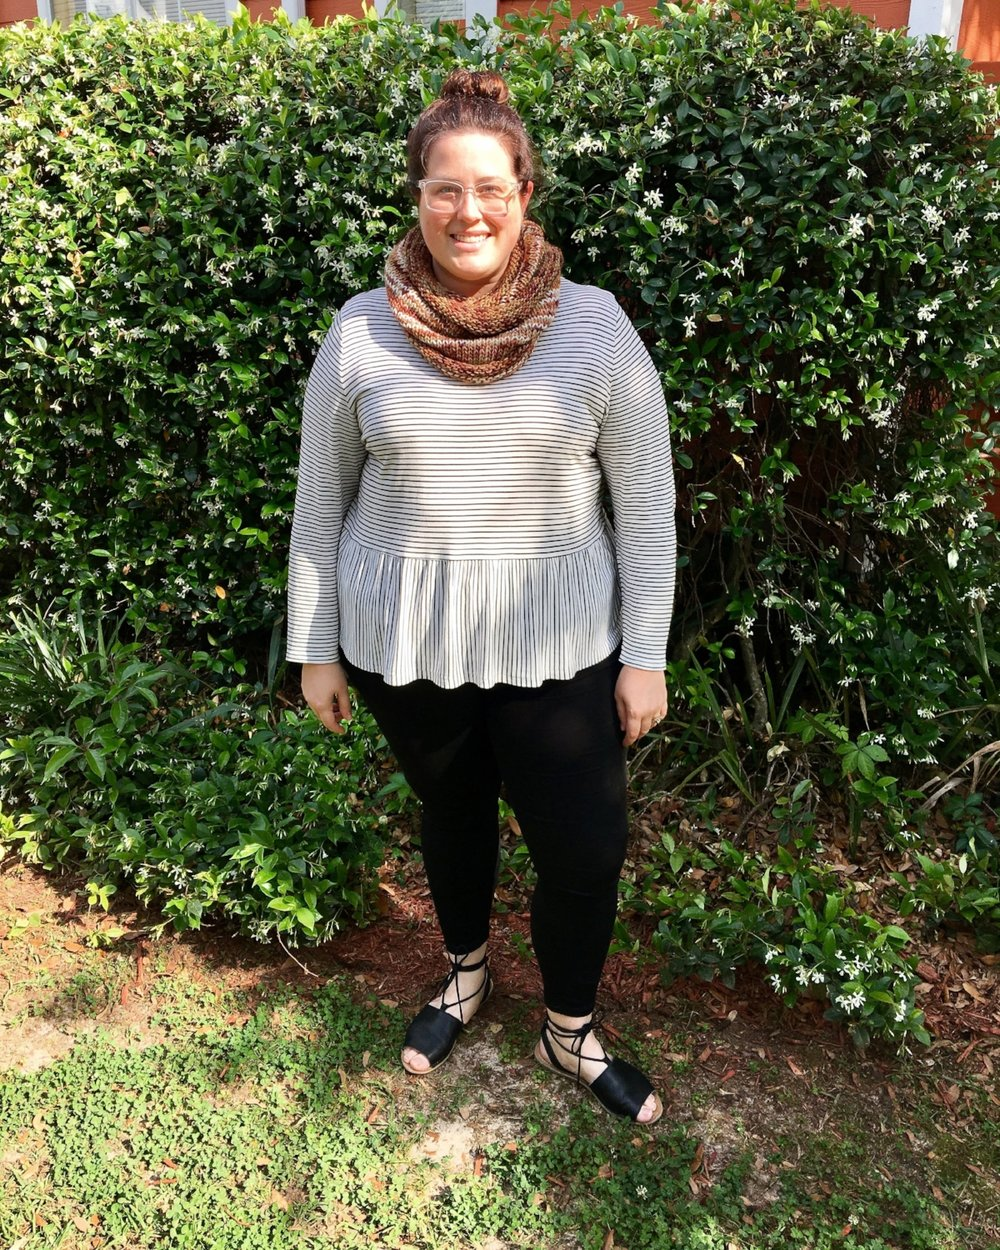 Outfit #7 - Black jeans, black sandals and a peplum top, all topped off with a scarf on the first day I was feeling better!